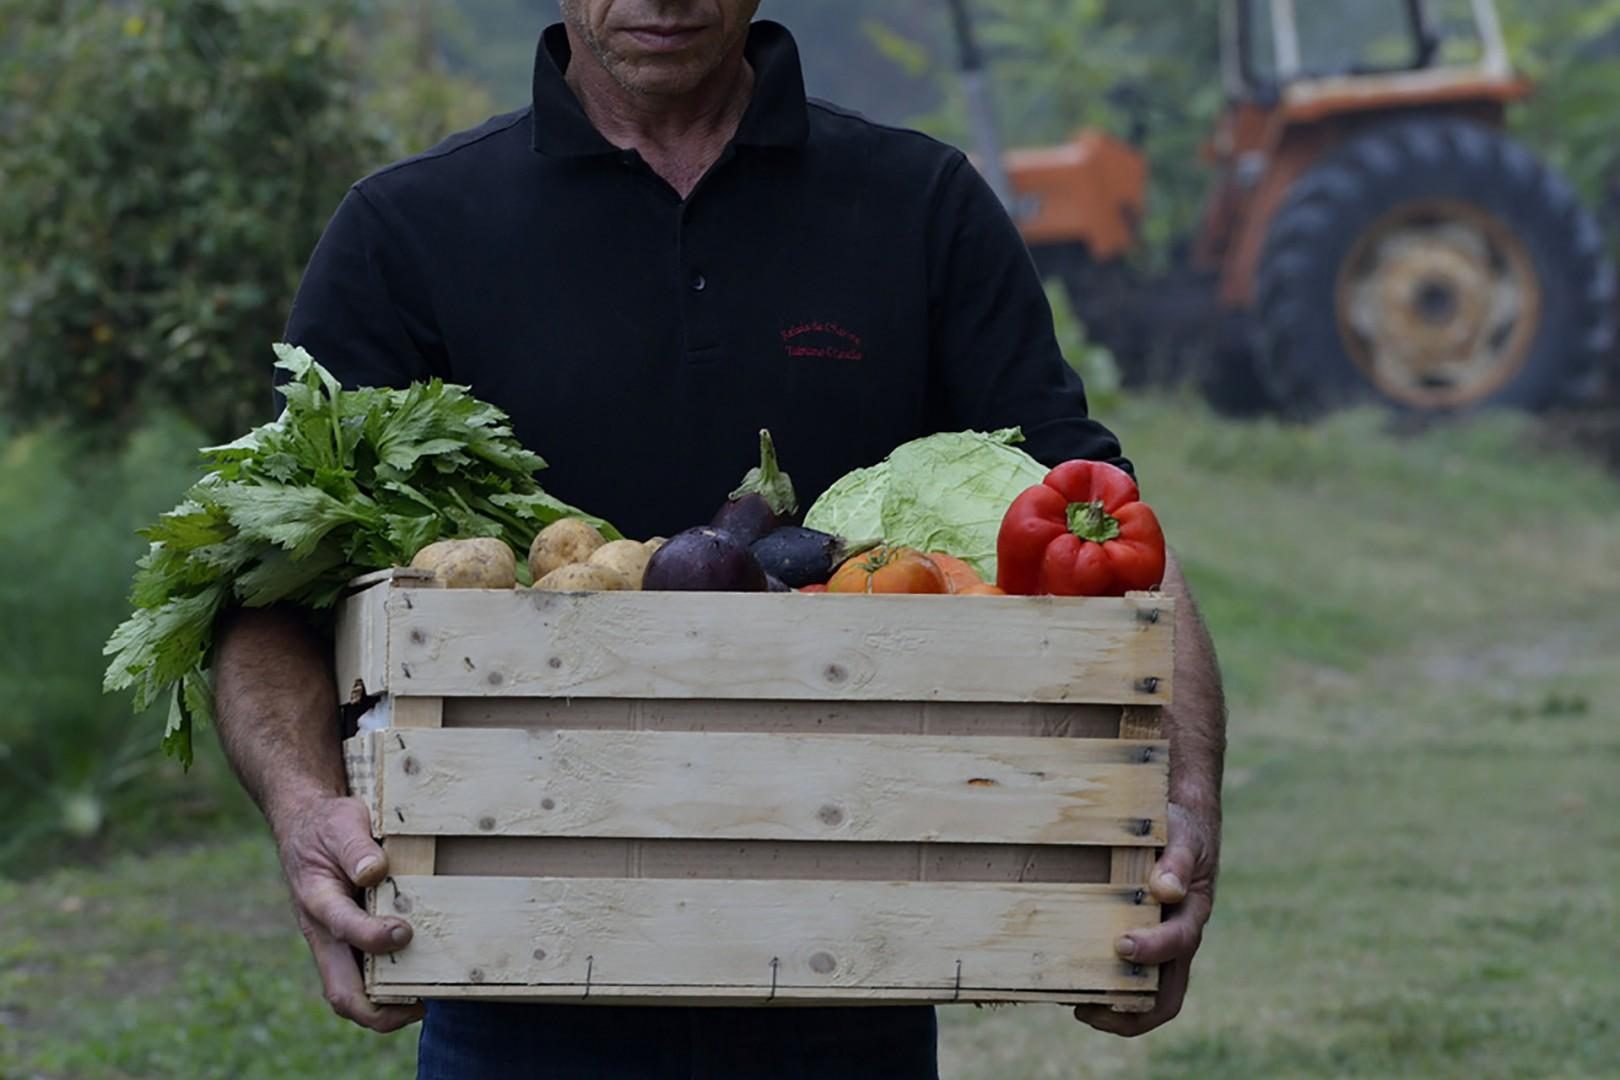 The restaurant serves local products and produce from their own garden.